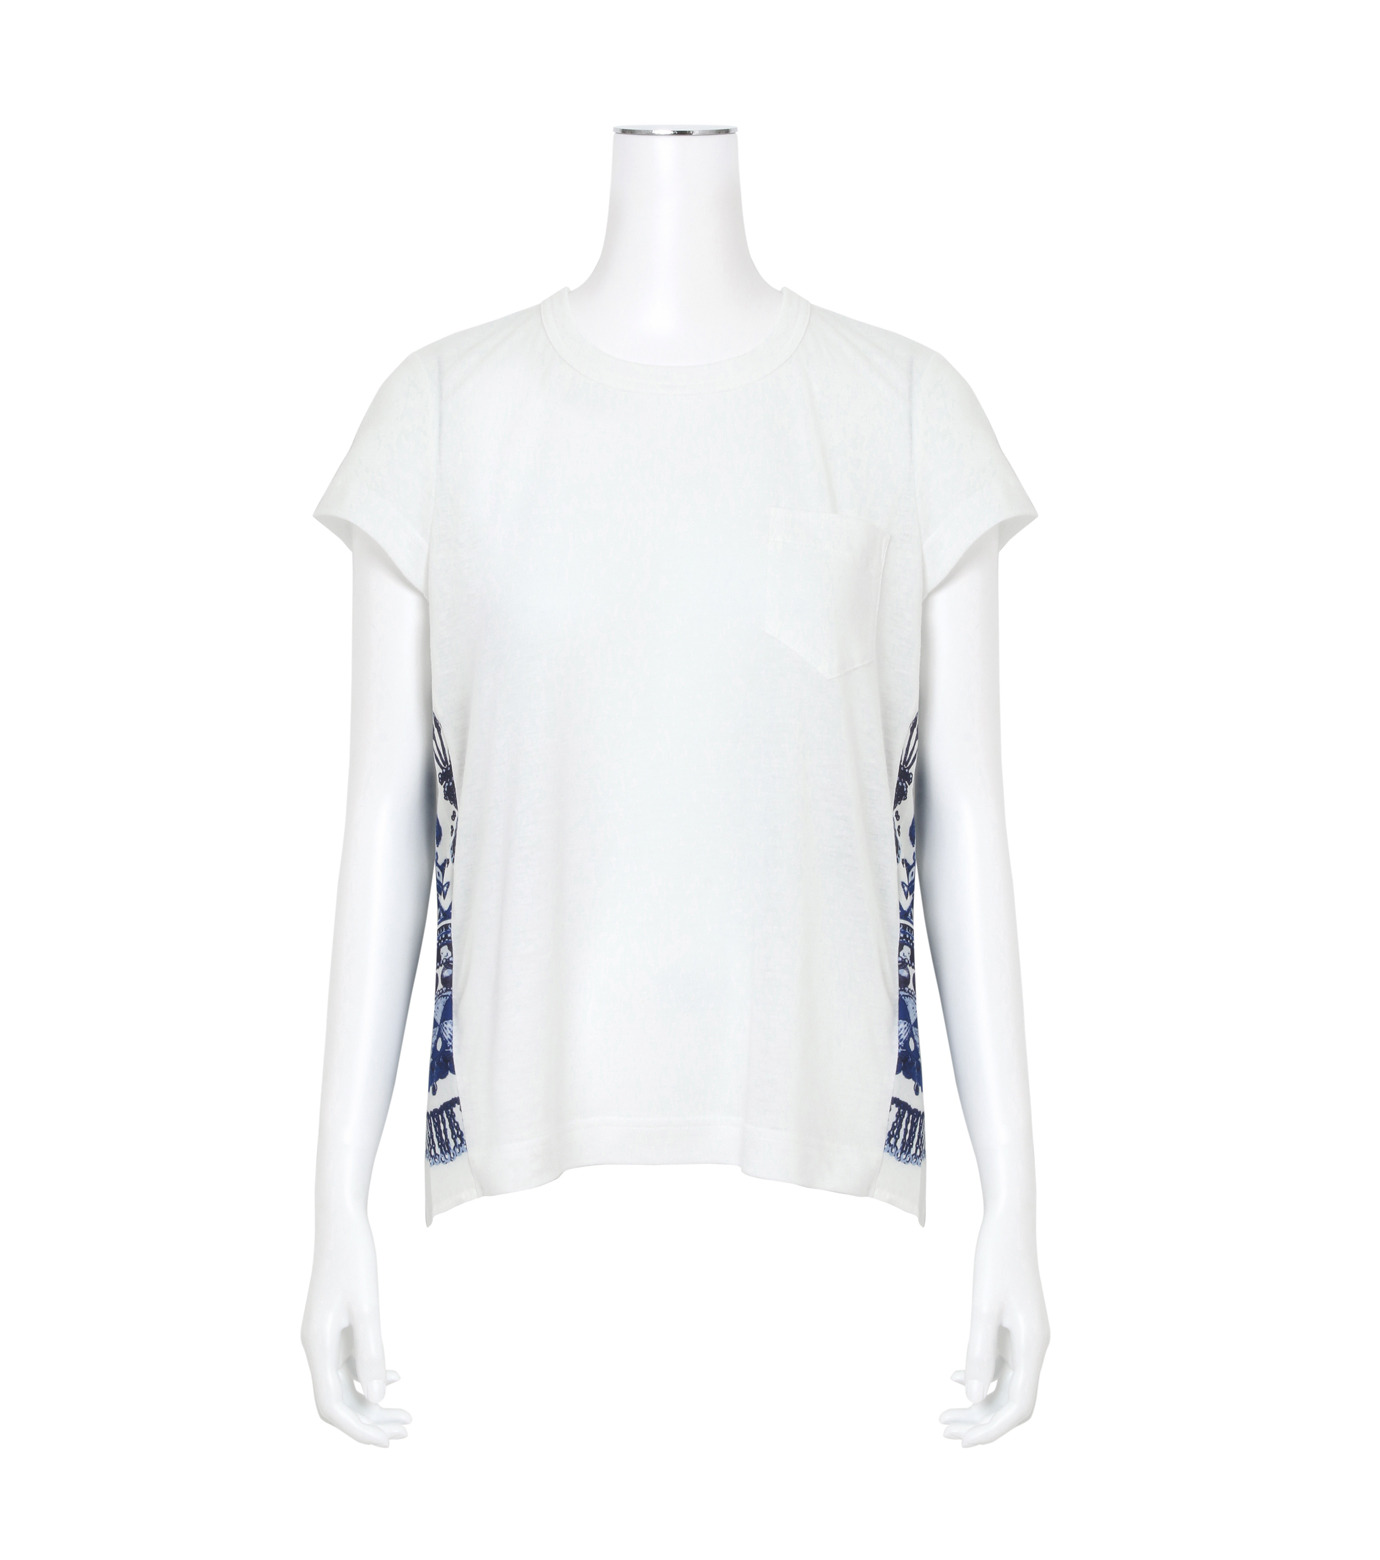 Sacai(サカイ)のTribal Lace Print Tees-WHITE(カットソー/cut and sewn)-17-02947-4 拡大詳細画像1